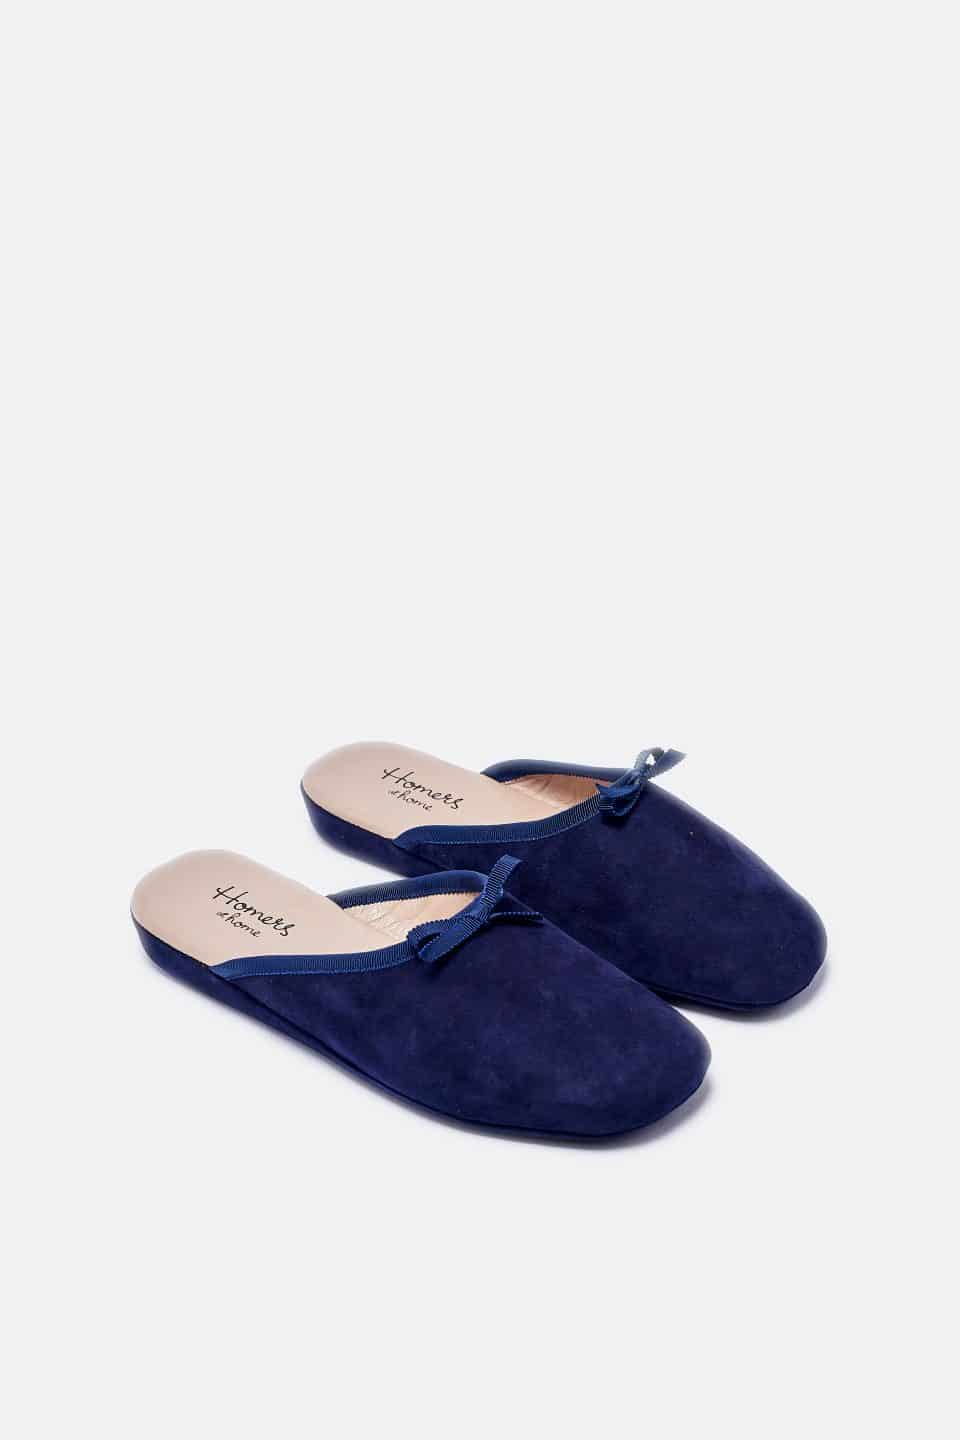 Homers Ante Astral Lazo Homers en Loyna Shoes